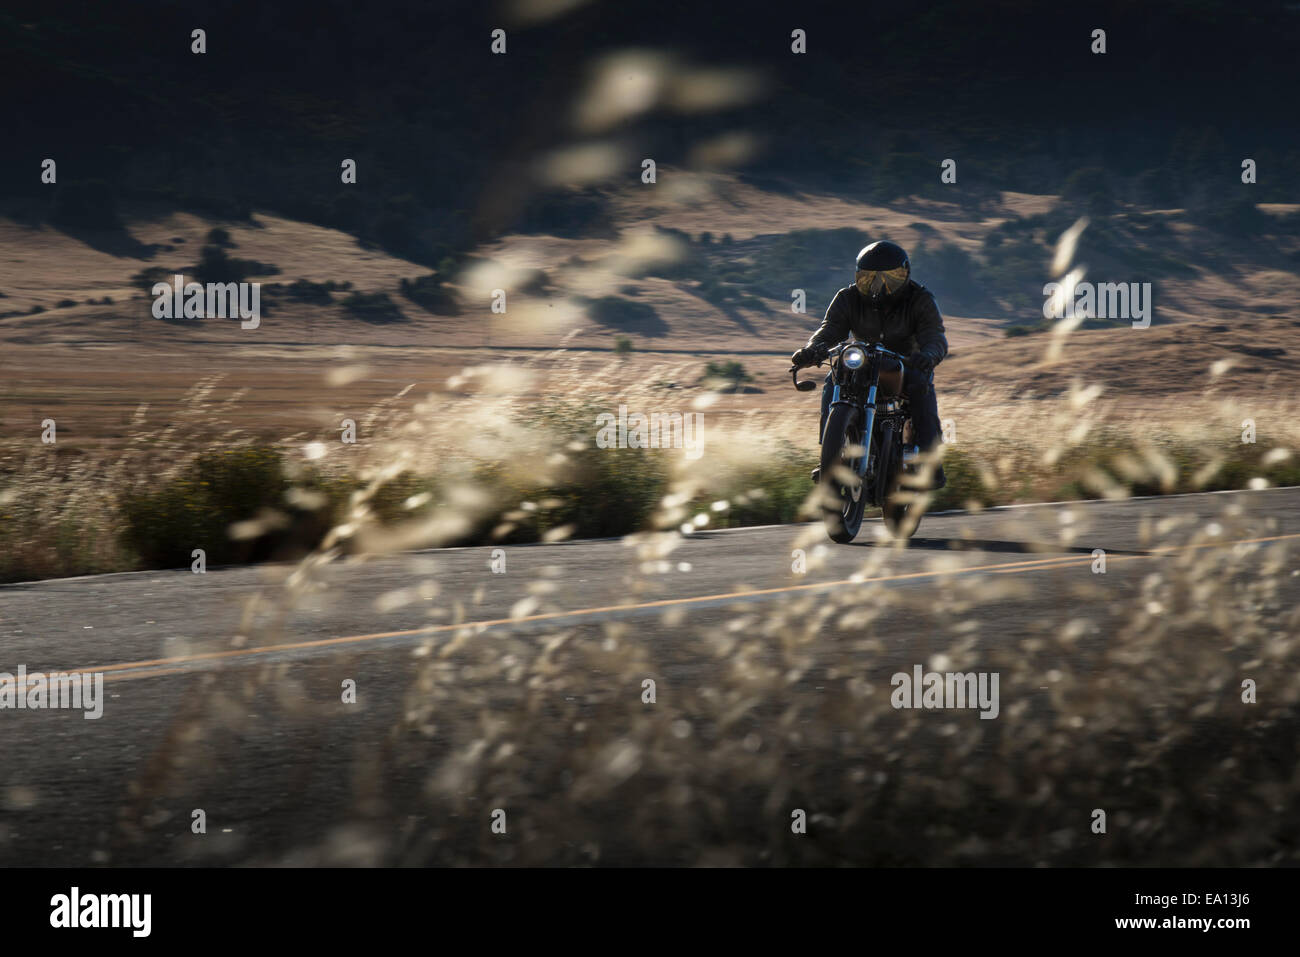 Male motorcyclist riding on highway - Stock Image